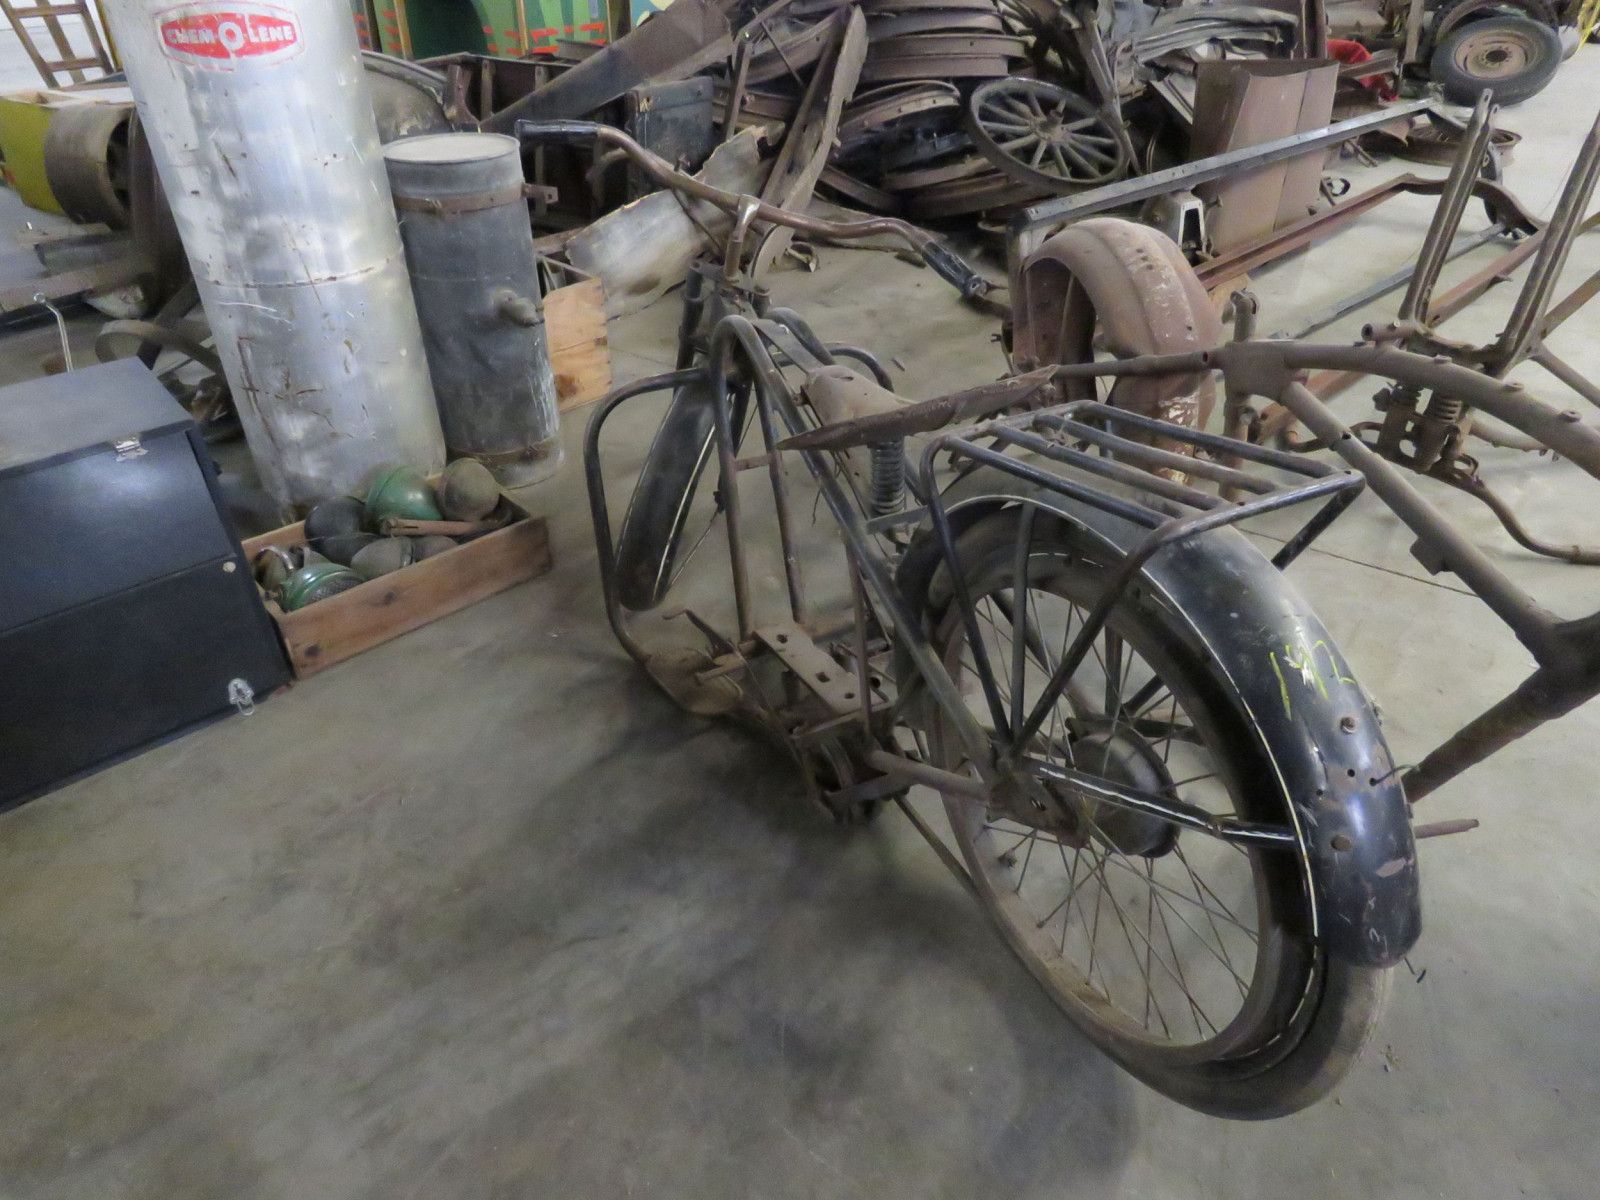 Vintage Servicycle Motorcycle Project - Image 5